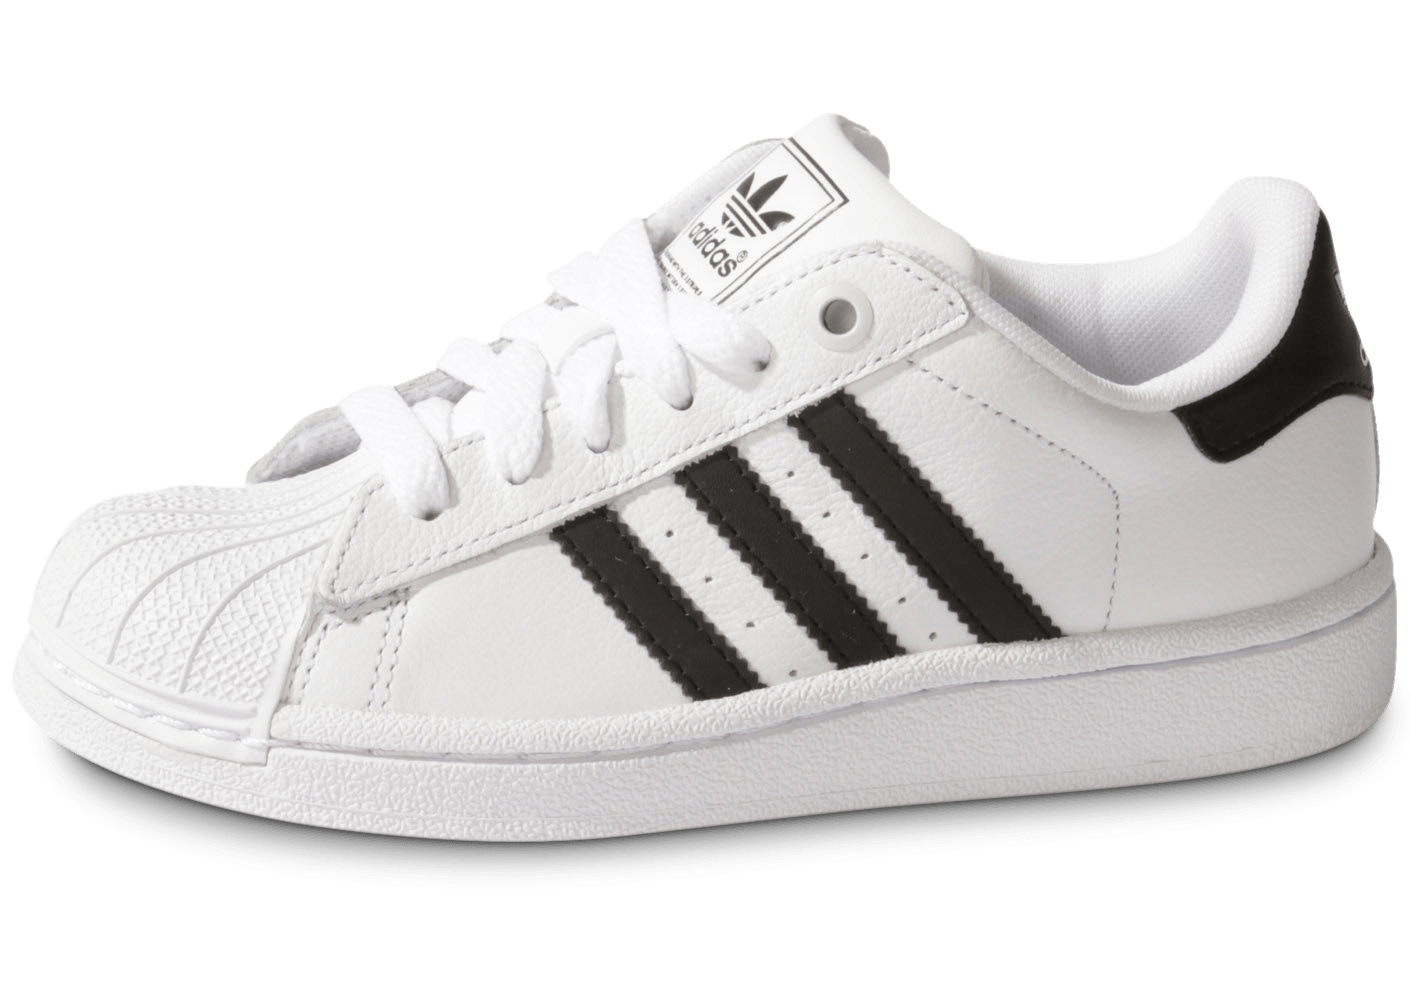 adidas superstar 2 enfant blanche chaussures adidas chausport. Black Bedroom Furniture Sets. Home Design Ideas